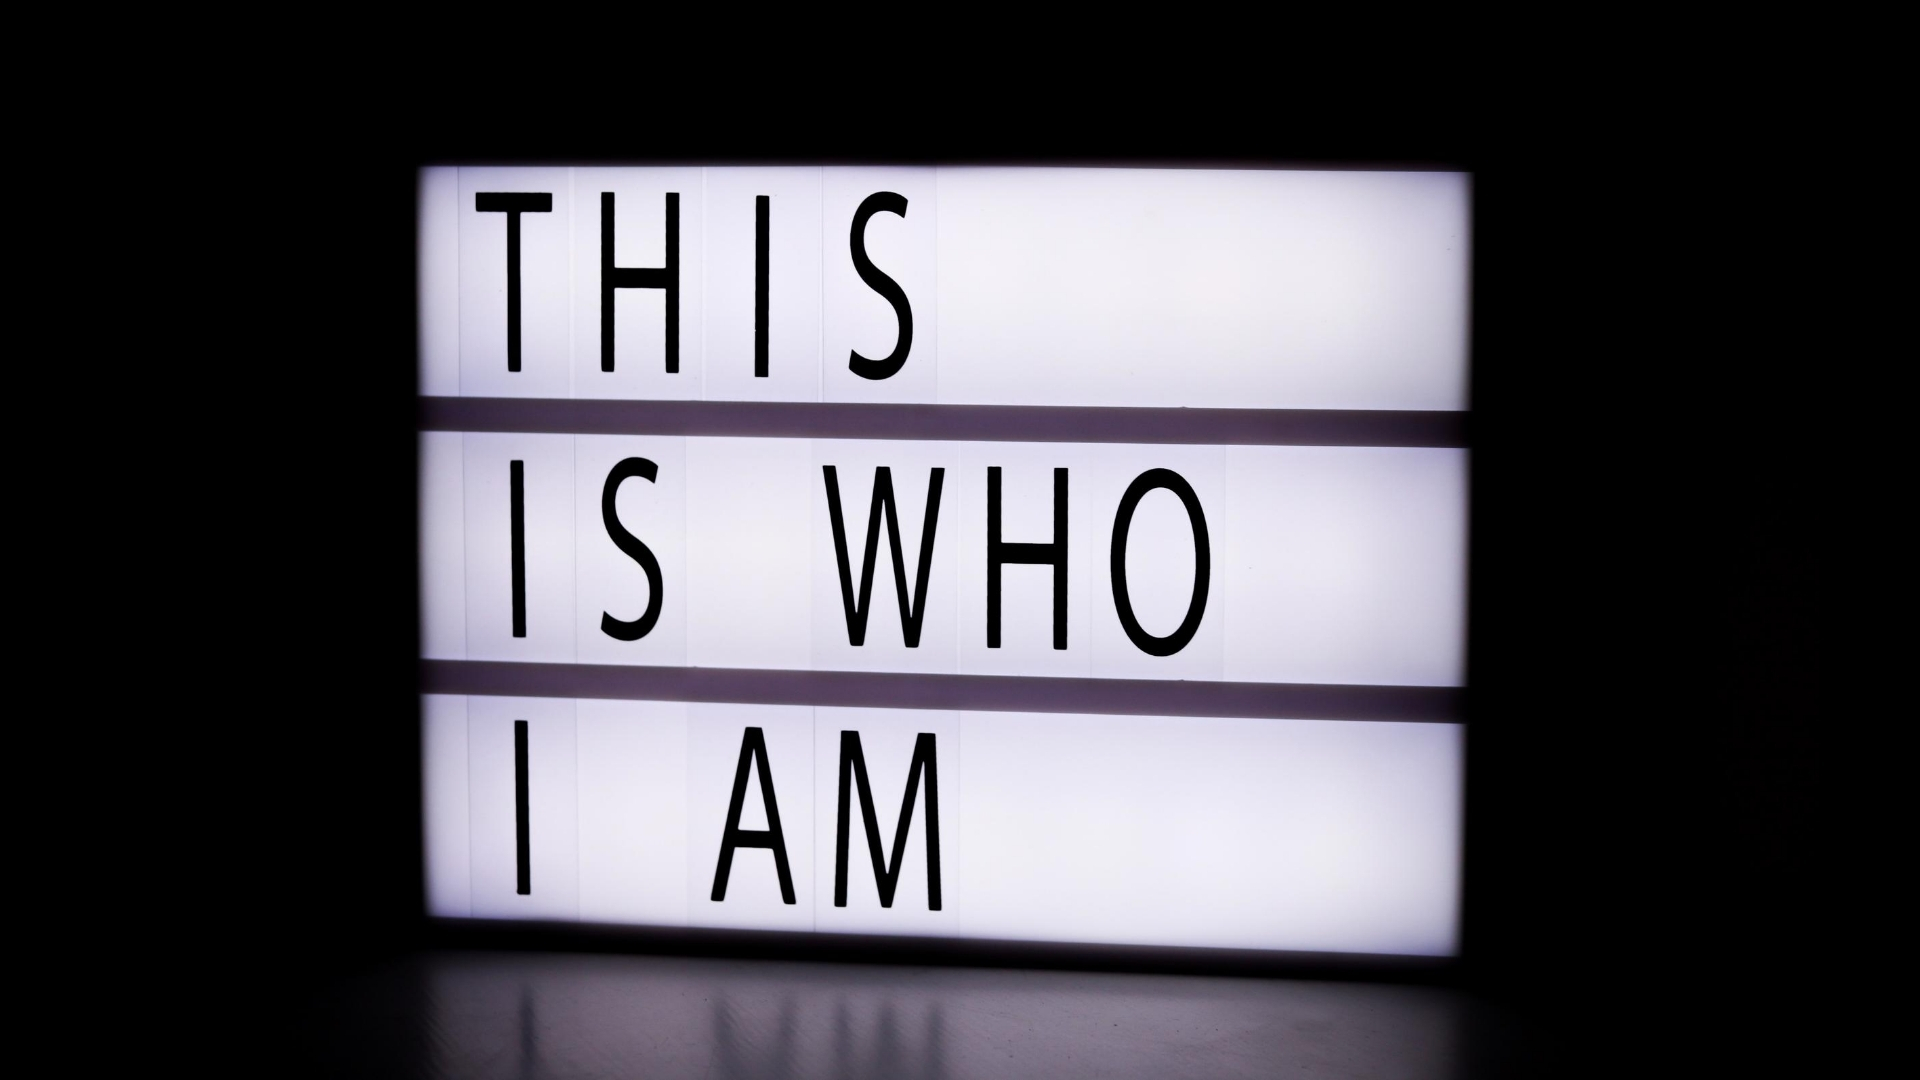 White Light-box in dark room with message in black: This is Who I AM